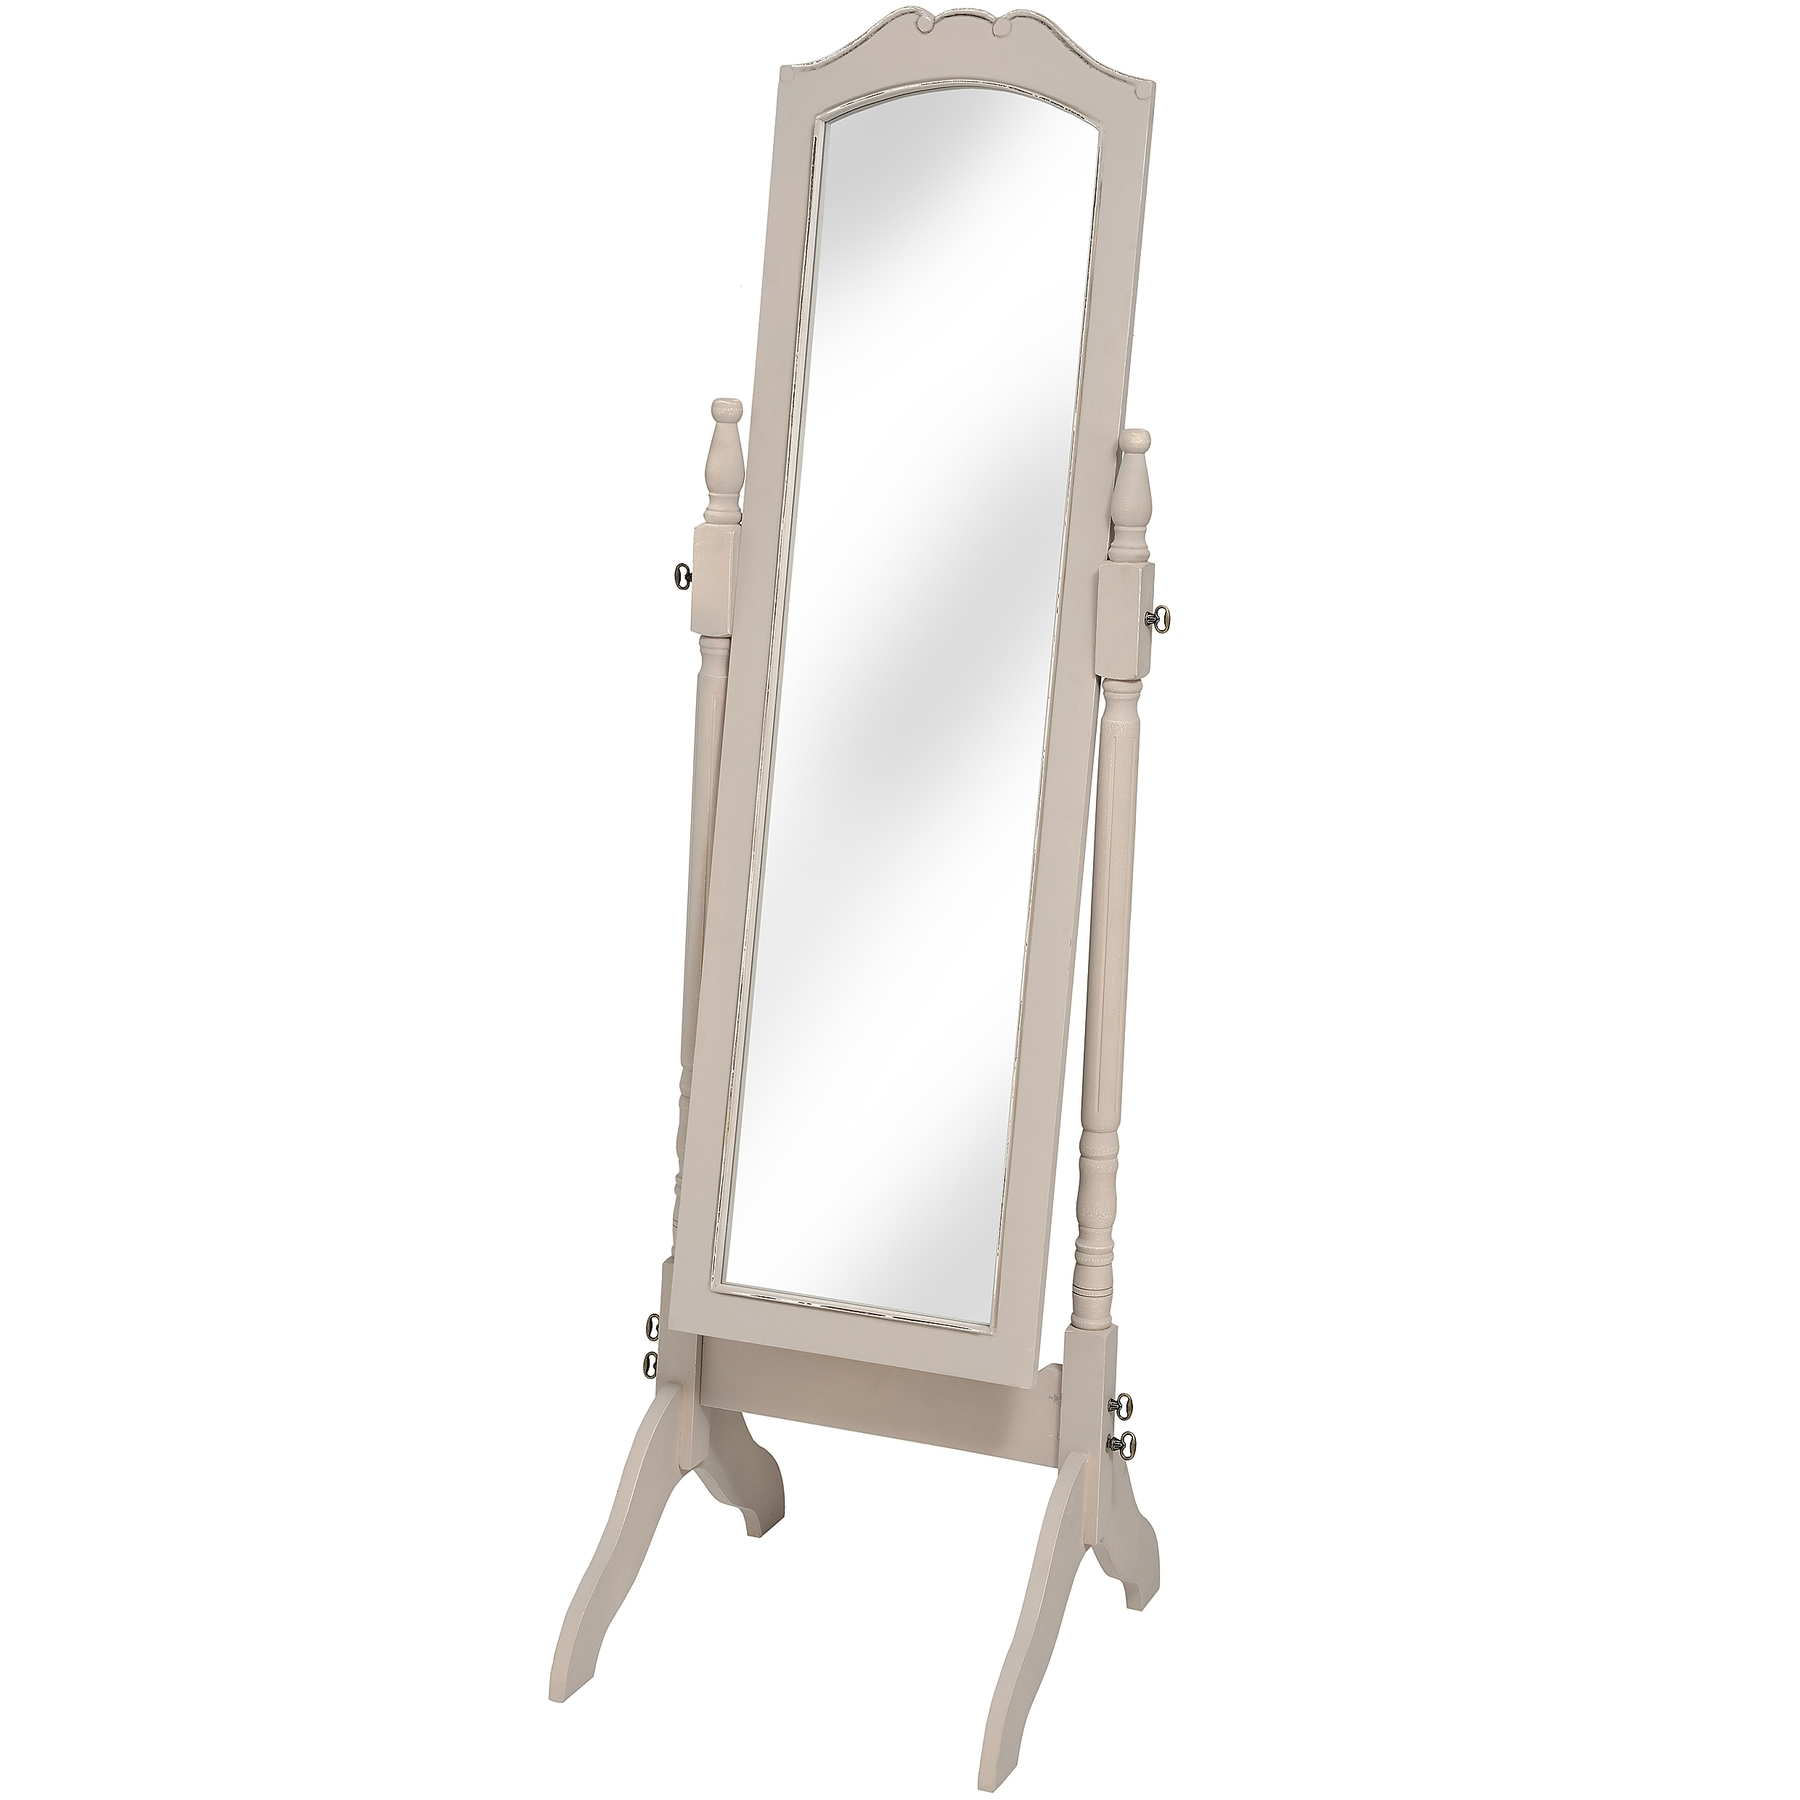 Floor Standing Mirror Standing Mirror And Louisiana On Pinterest In Shabby Chic Floor Standing Mirror (Image 9 of 15)